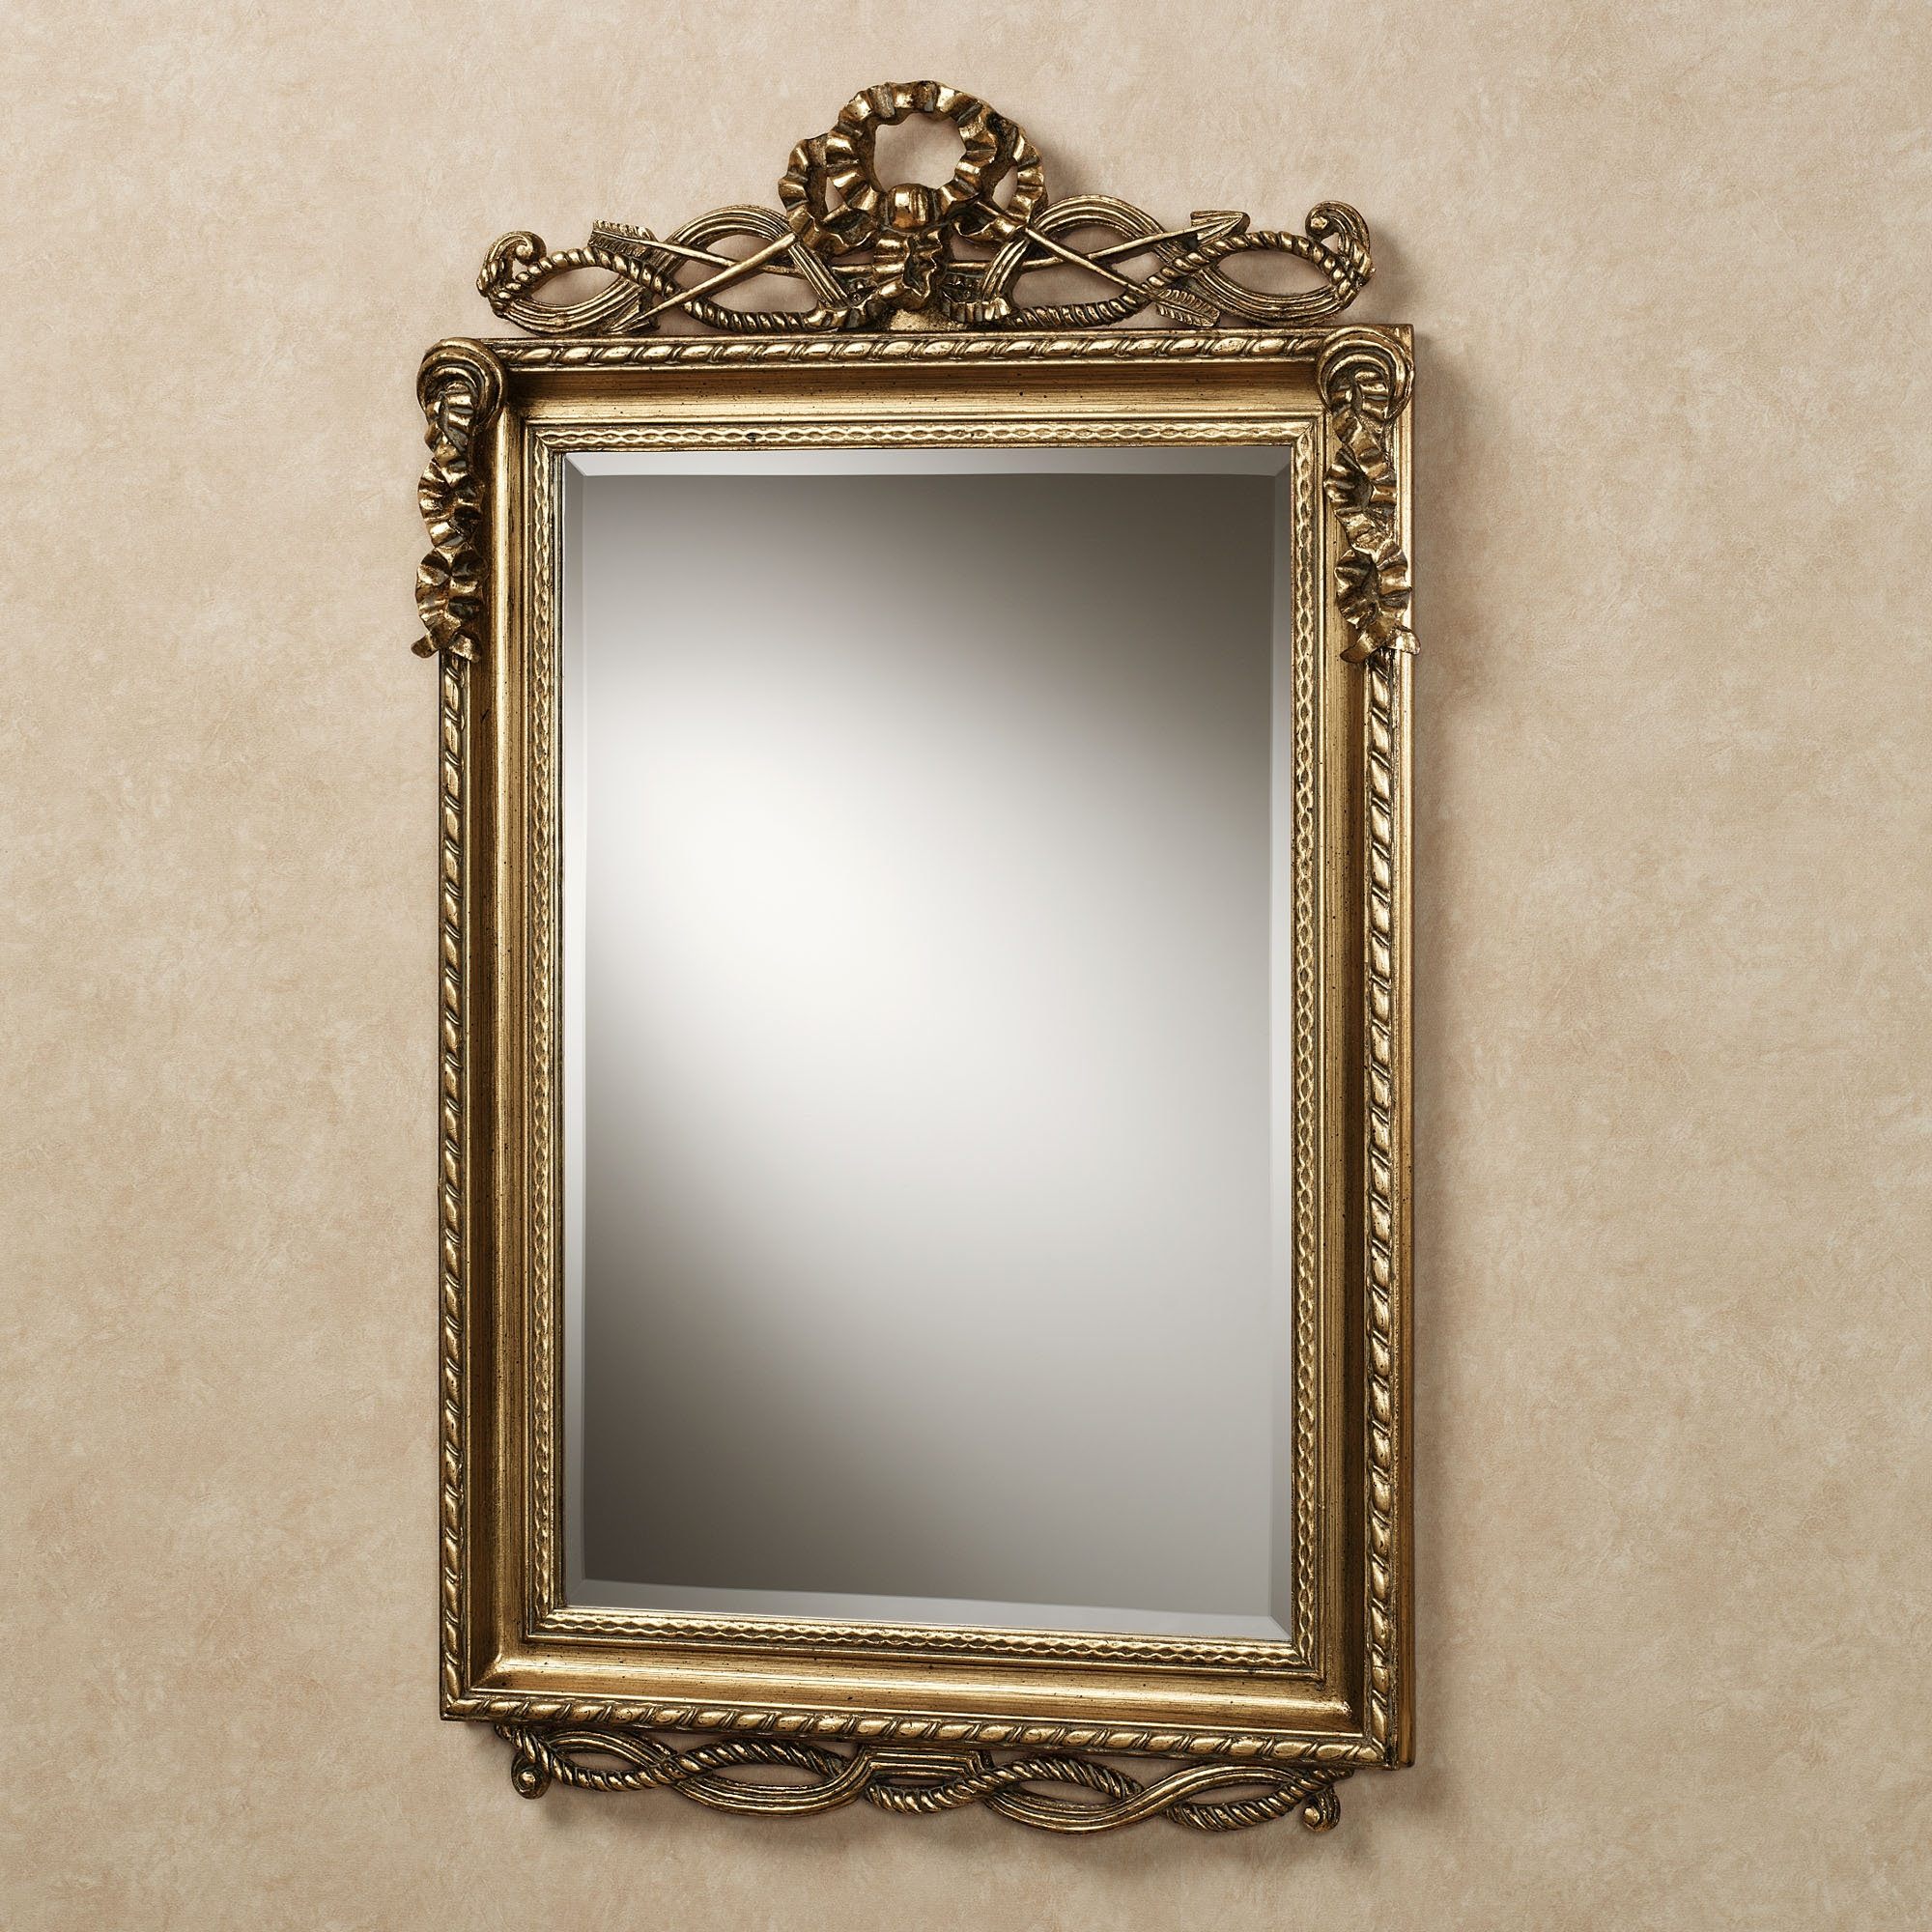 Stunning Ideas Vintage Wall Mirrors Pretty Decorative Vintage Throughout Vintage Wall Mirrors For Sale (Image 12 of 15)